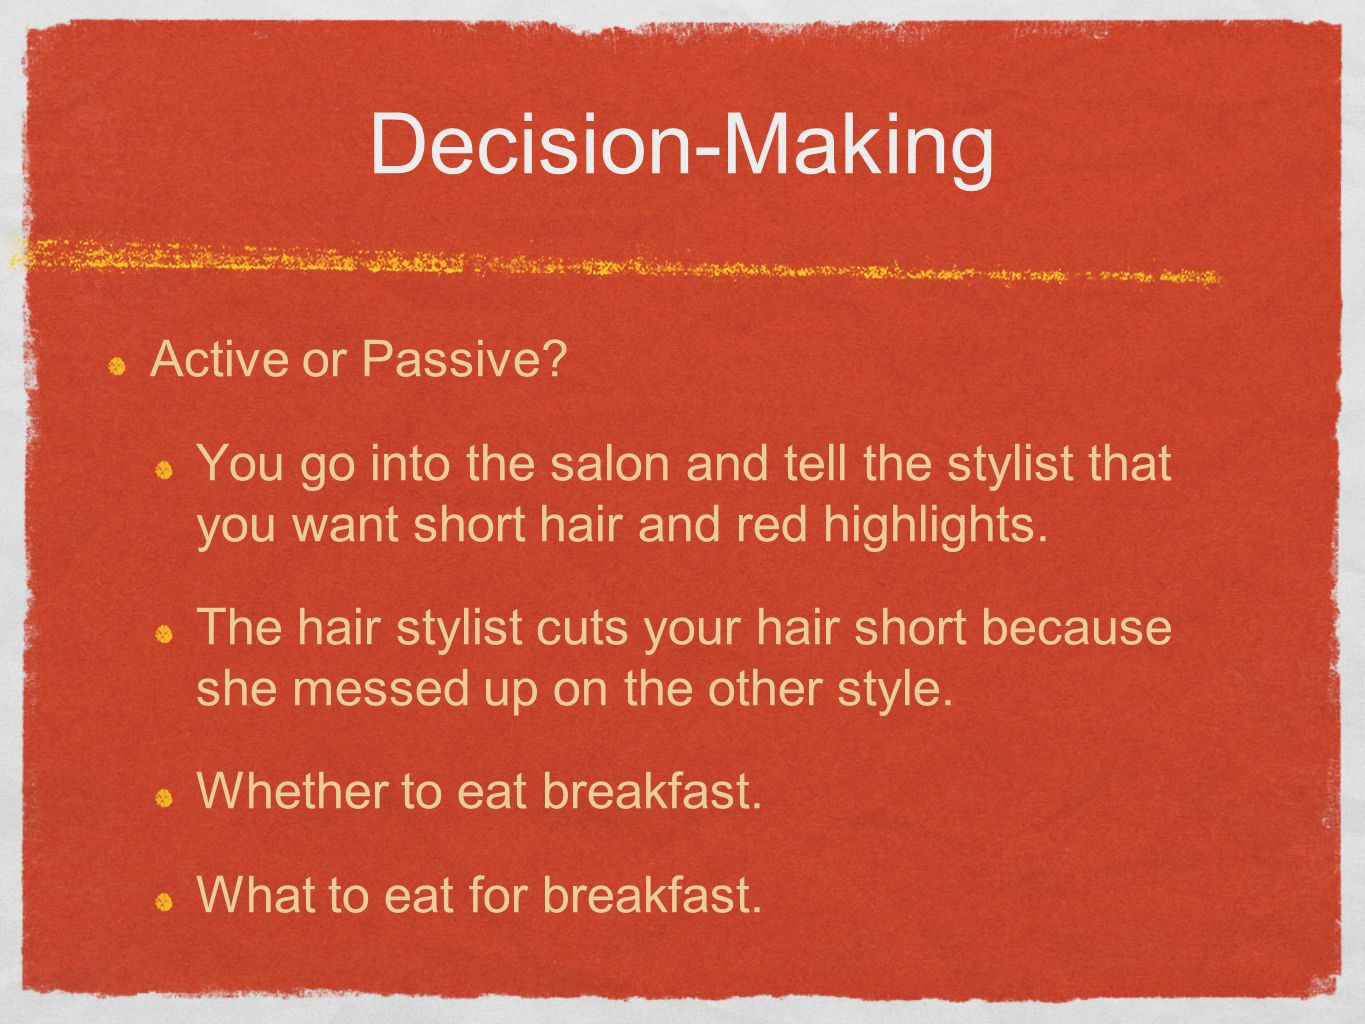 what is passive decision making